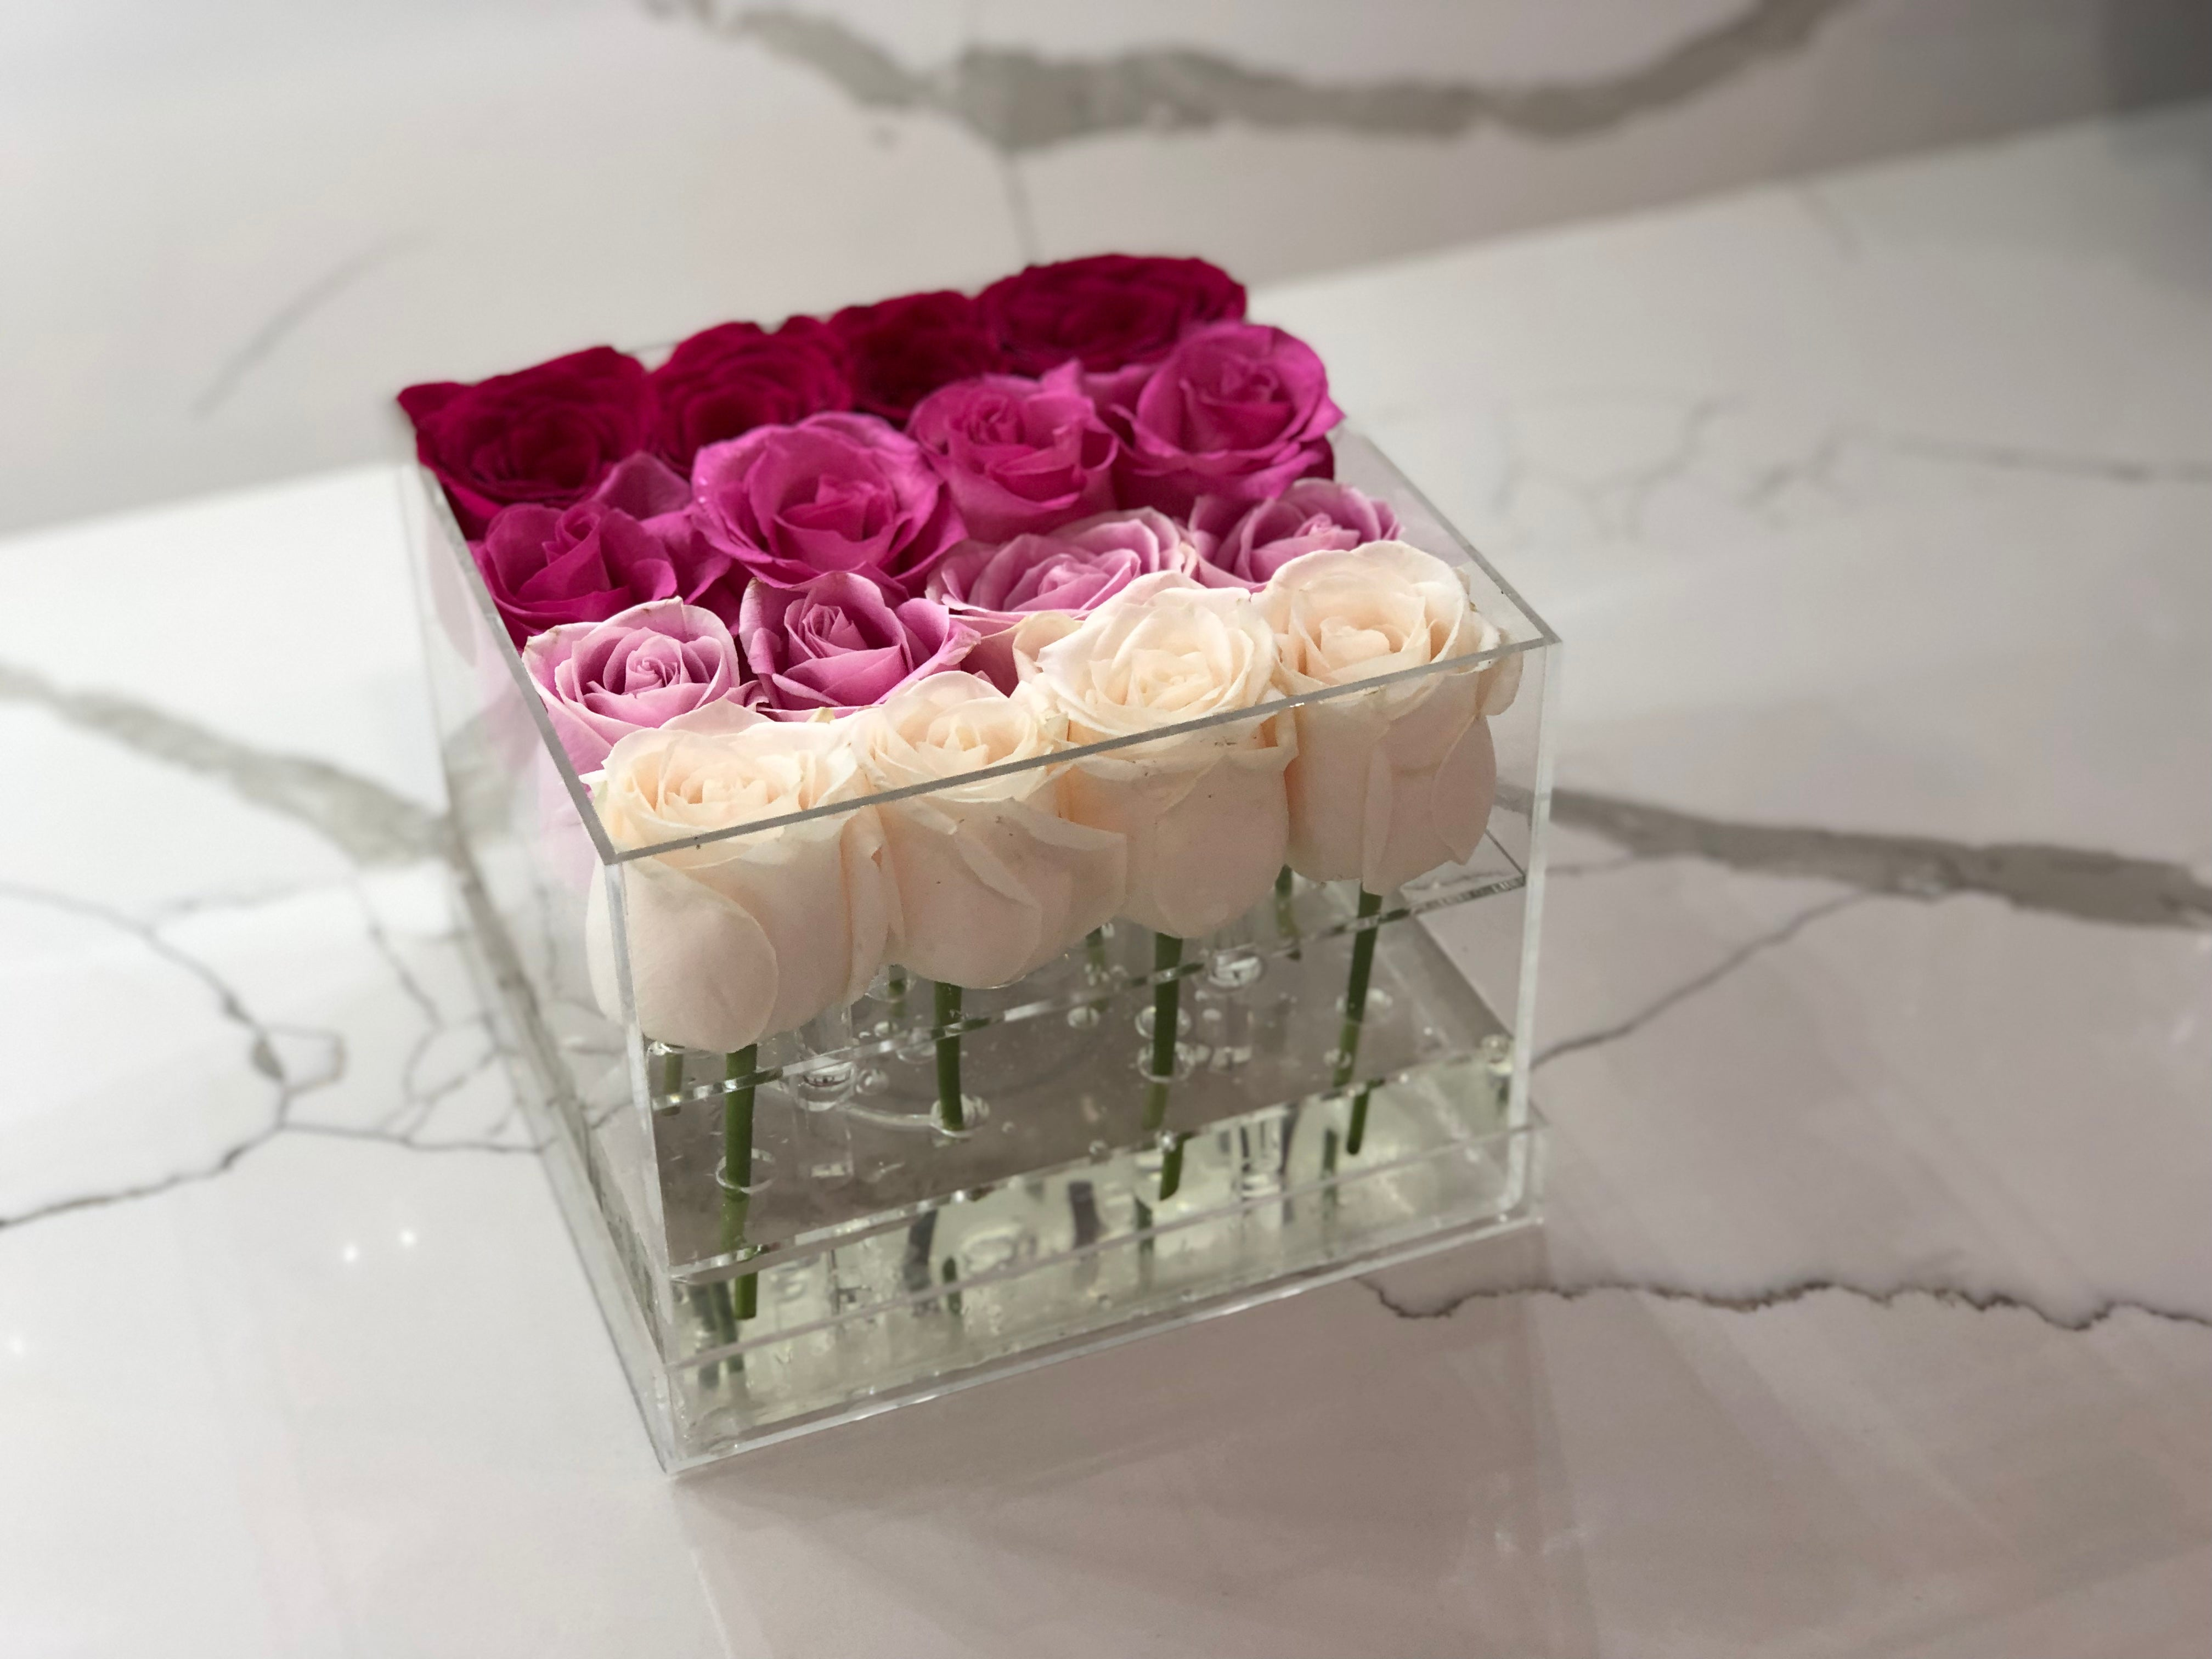 Modern Rose Box with preserved roses that last for years with an ombre mix of red roses and pink roses, lavender roses and ivory roses